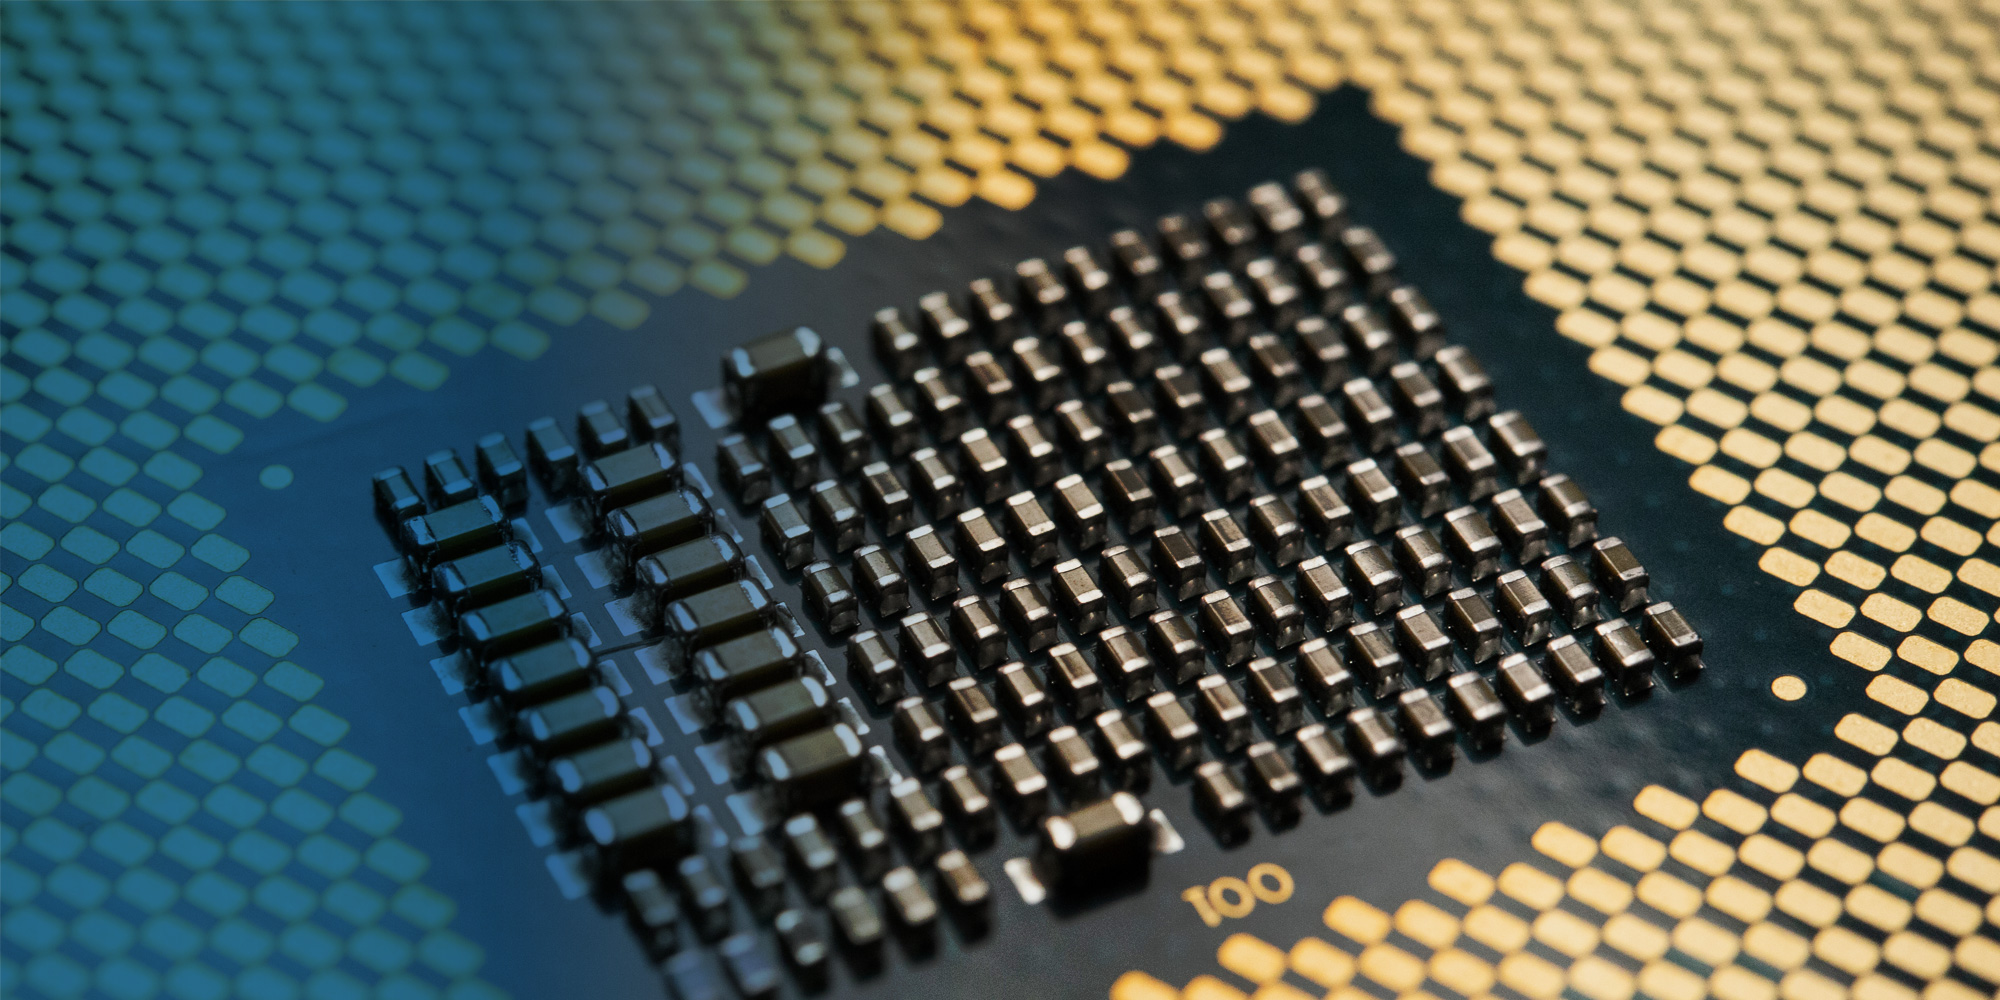 Intel Comet Lake-S CPUs Rumored To Pack 10 Cores on 14nm Process